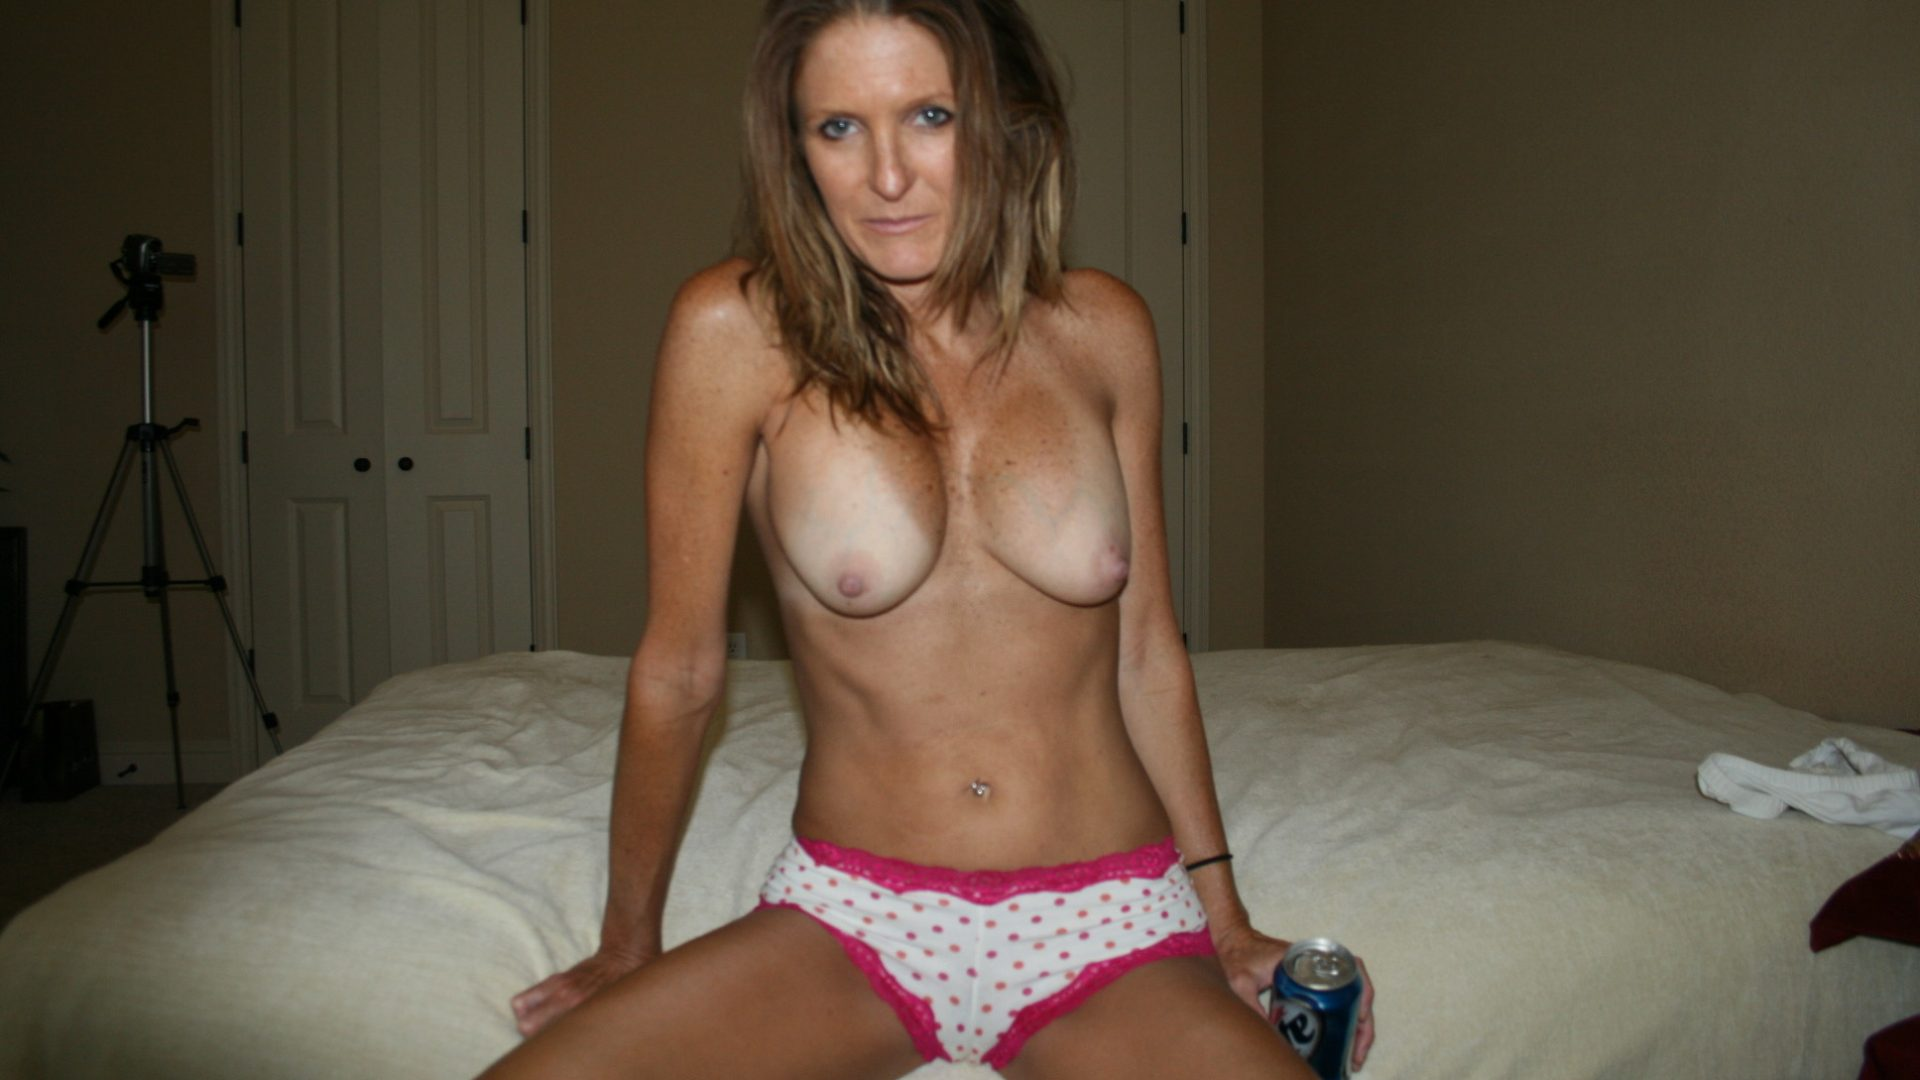 Mature mom shows off her nice tits naked. Nude lady without a bra exposes her breasts